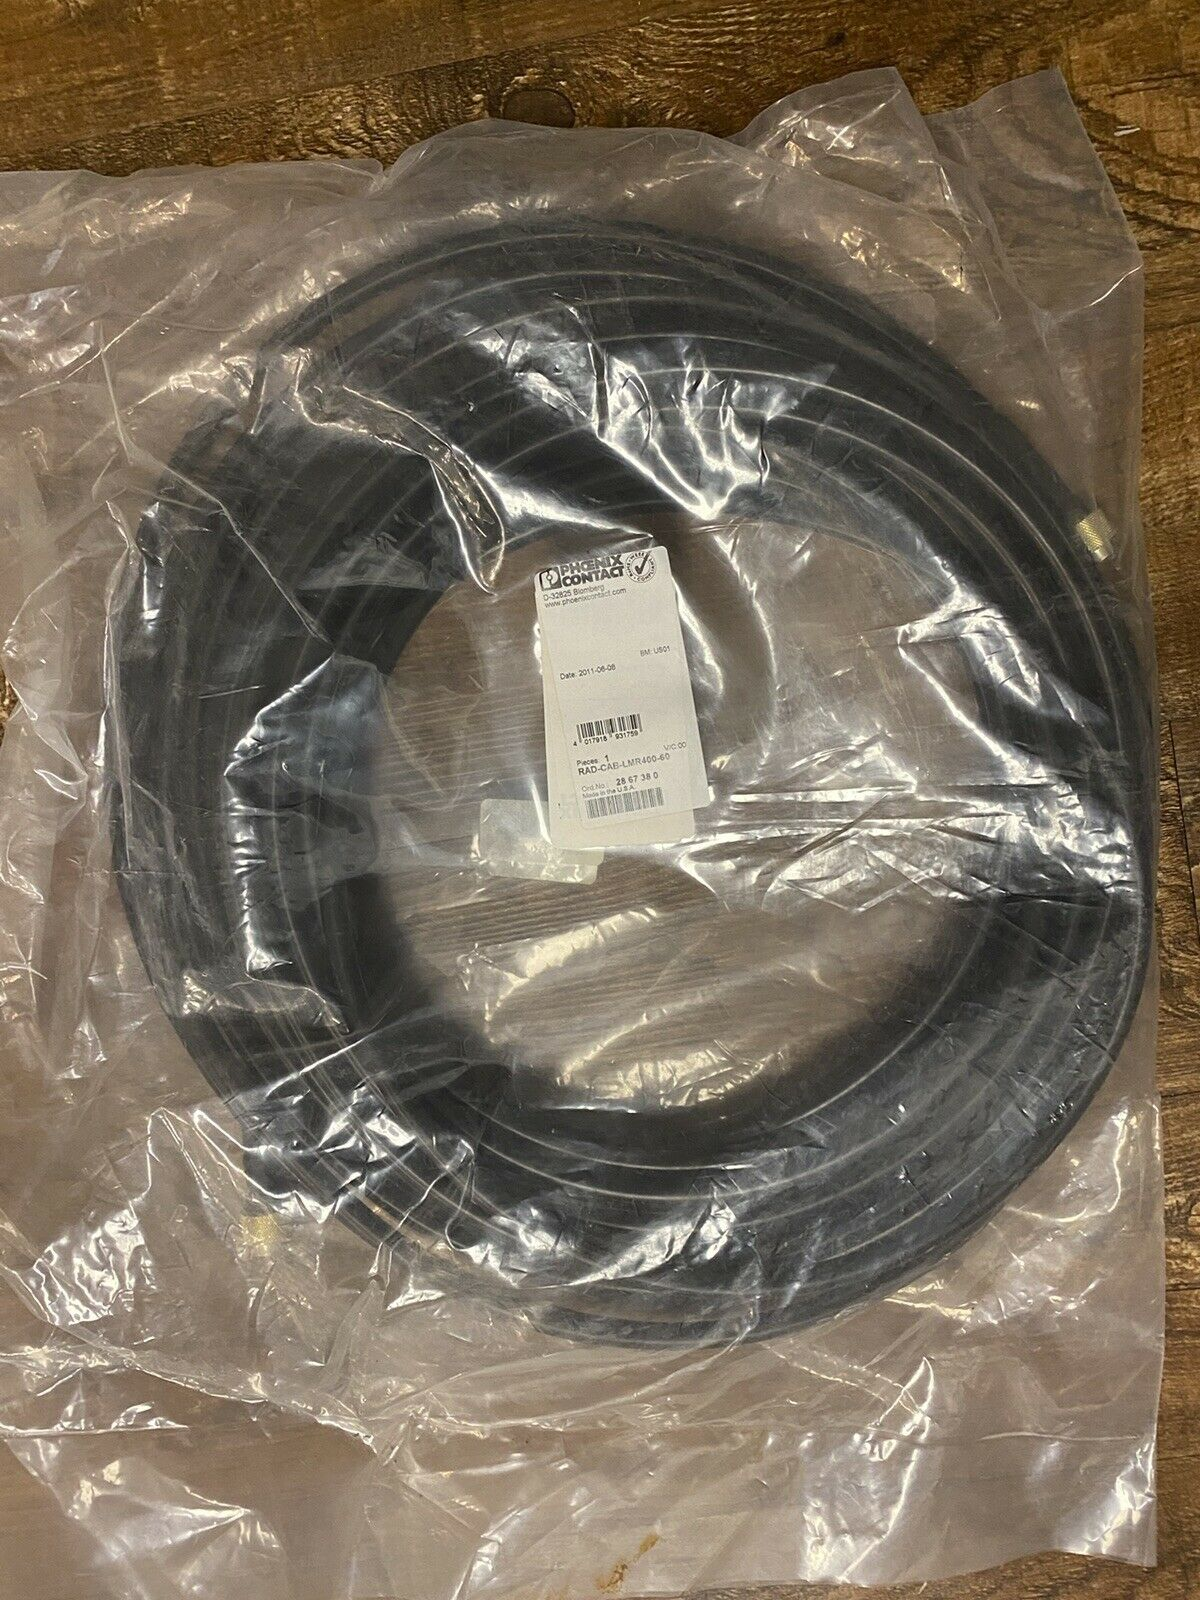 LMR- 400 Coaxial Cable. Available Now for 110.00